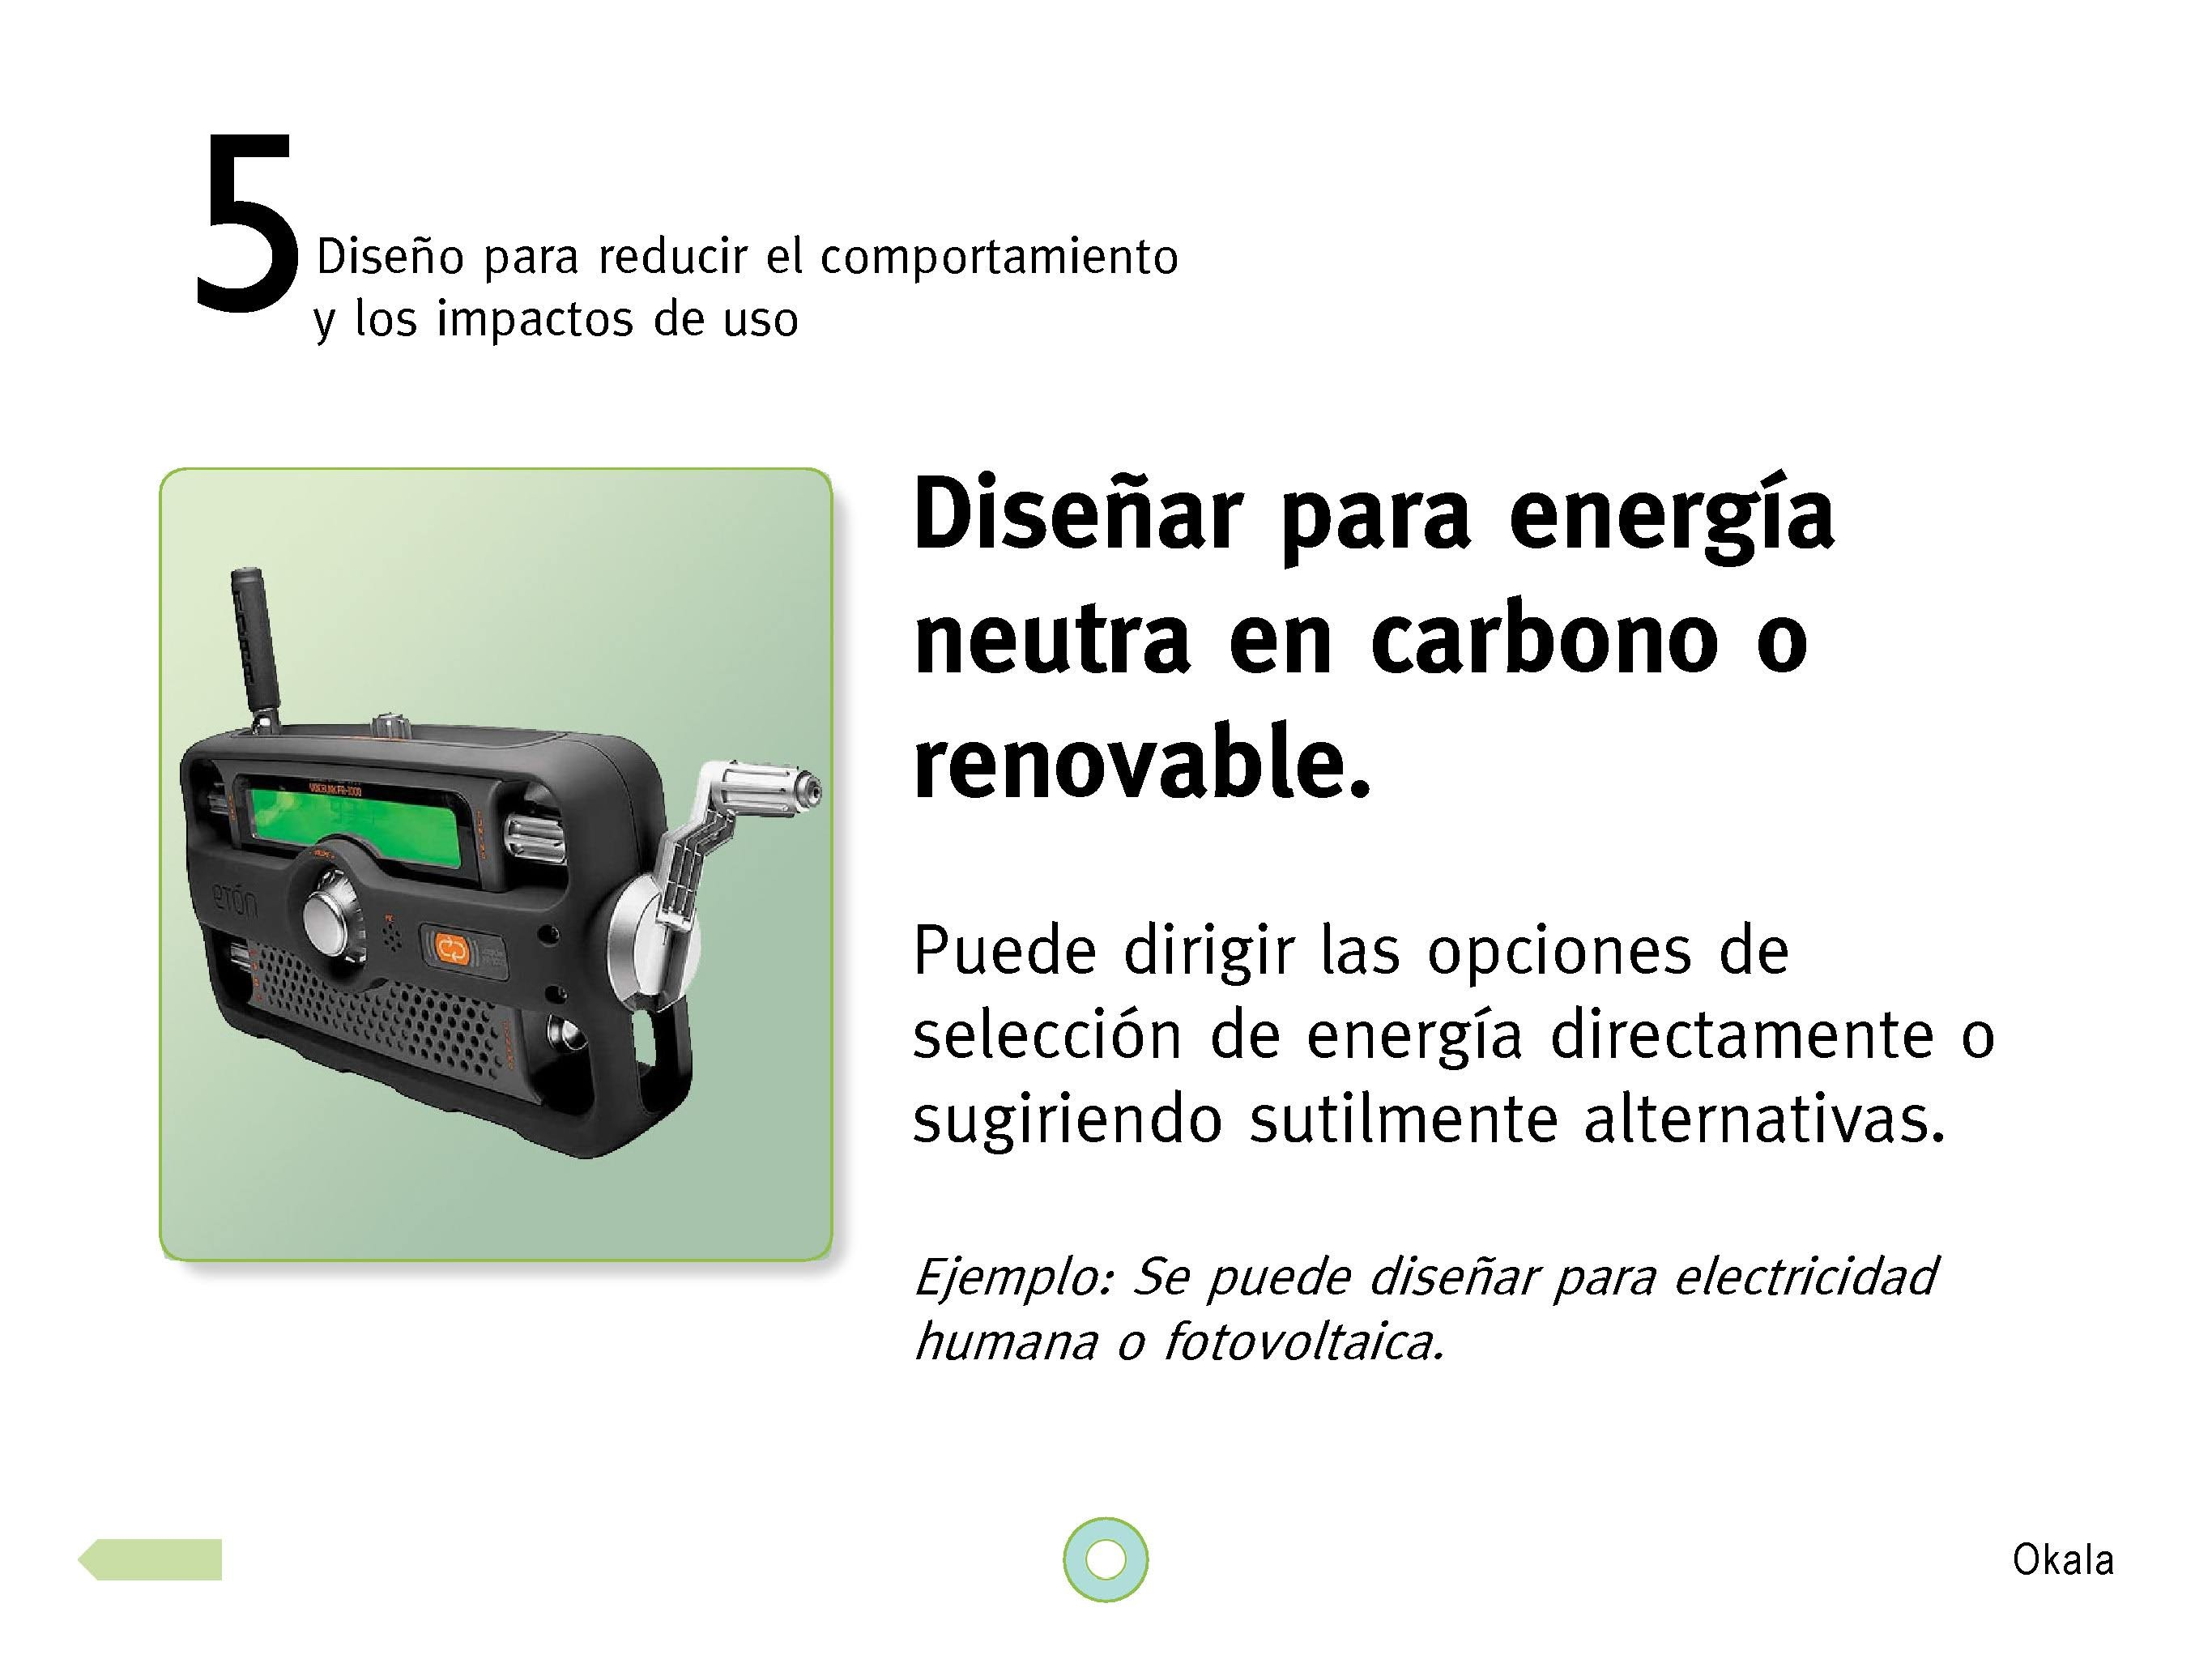 okala-ecodesign-strategy-guide-2012-spanish.new_page_32-1